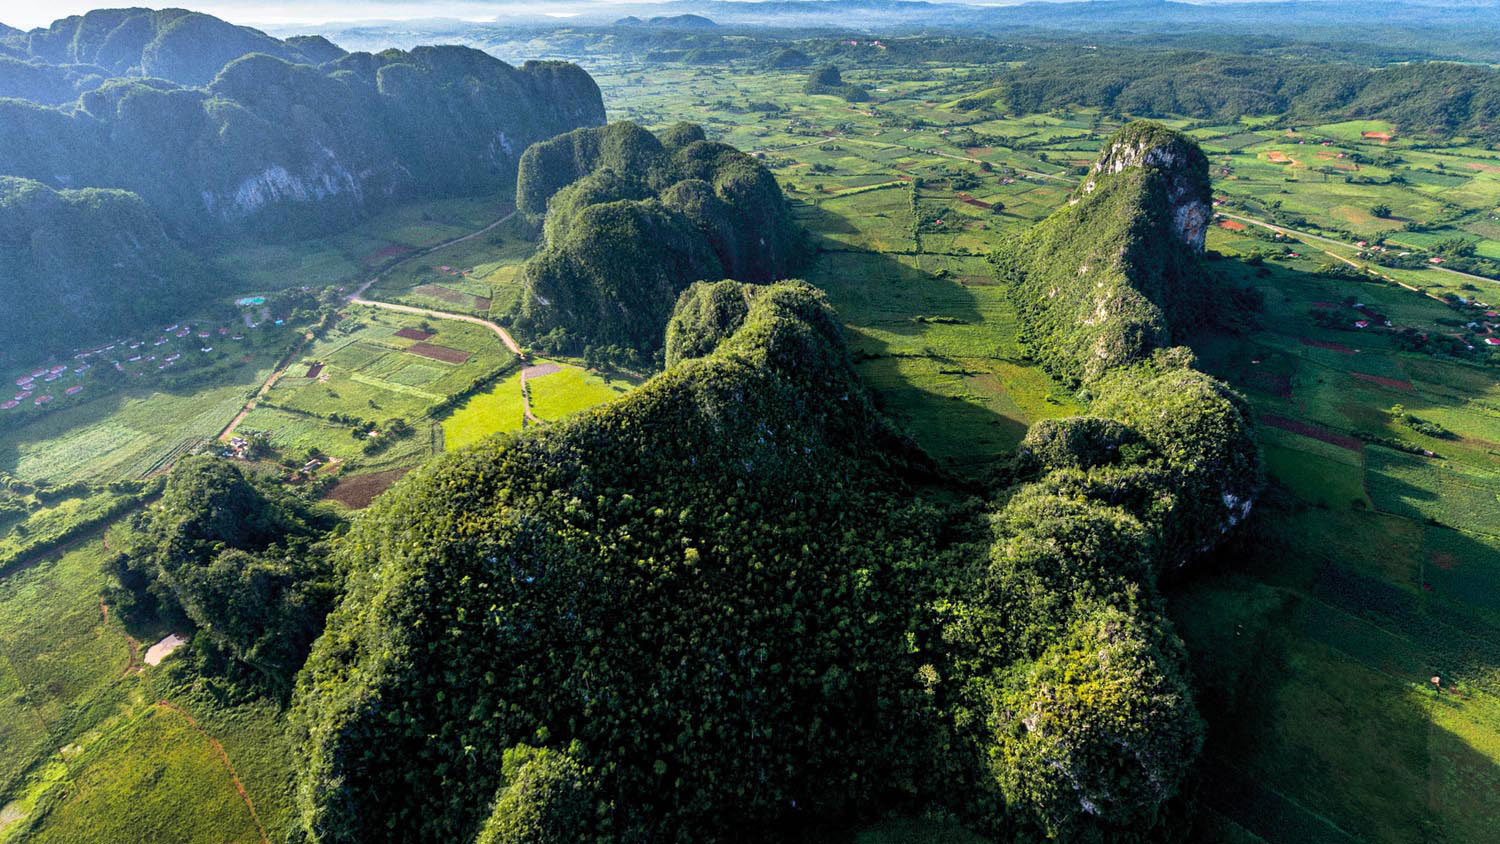 Cuba's Viñales Valley is famous for its distinctive mogotes, sheer-sided limestone hills rising from a lush plain. Photo courtesy Go Cuba